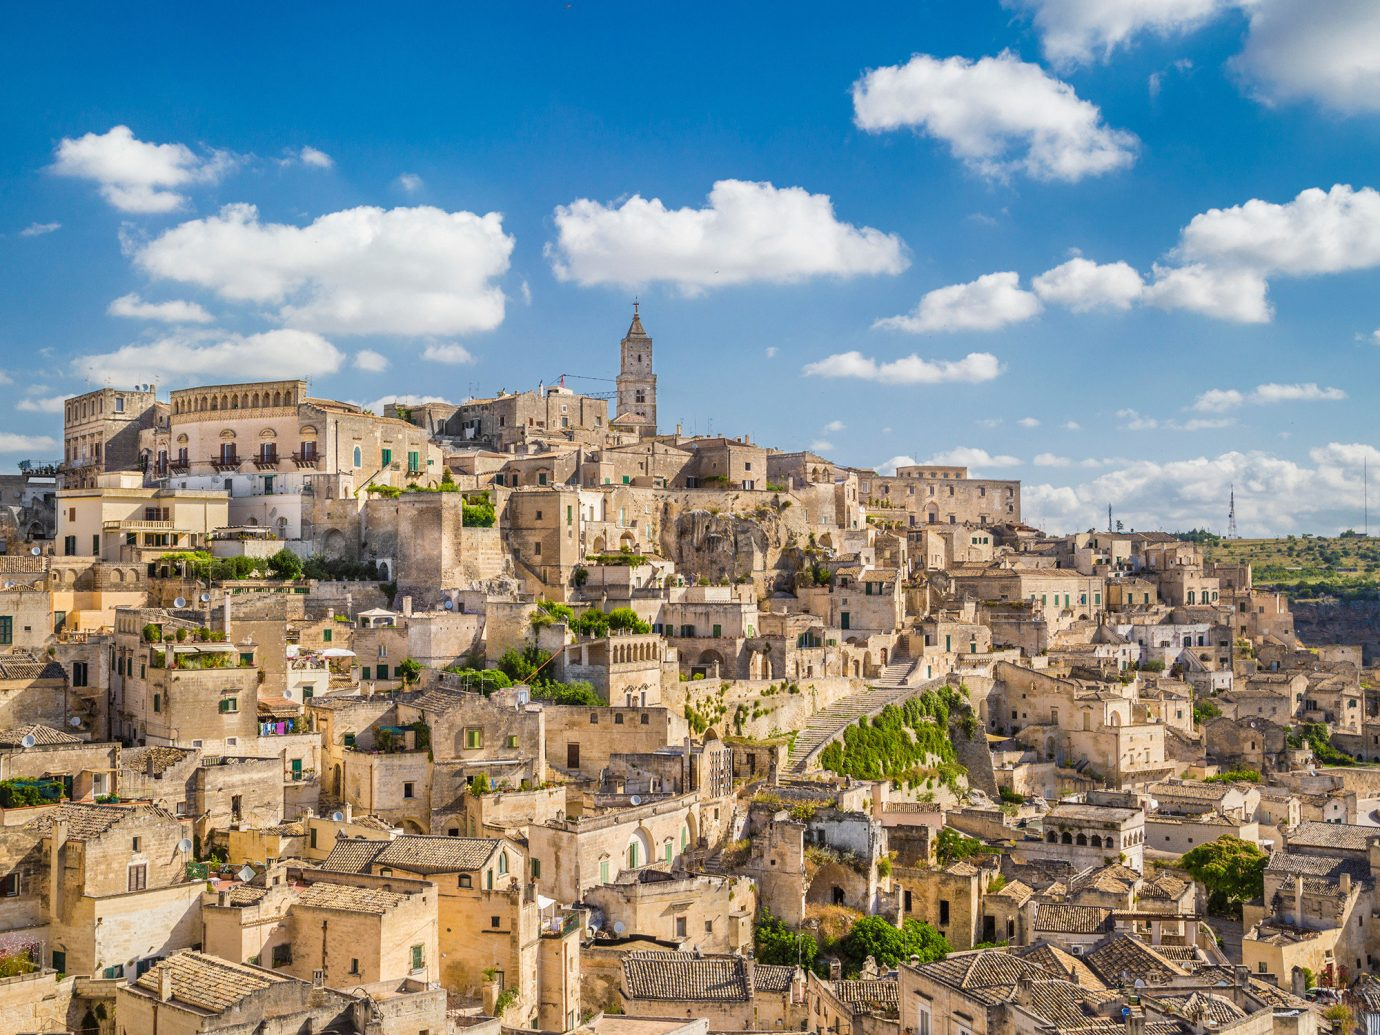 Jetsetter Guides sky building outdoor Town geographical feature historic site landmark cityscape human settlement City neighbourhood residential area ancient history Village canyon landscape Ruins ancient rome Coast panorama aerial photography unesco world heritage site